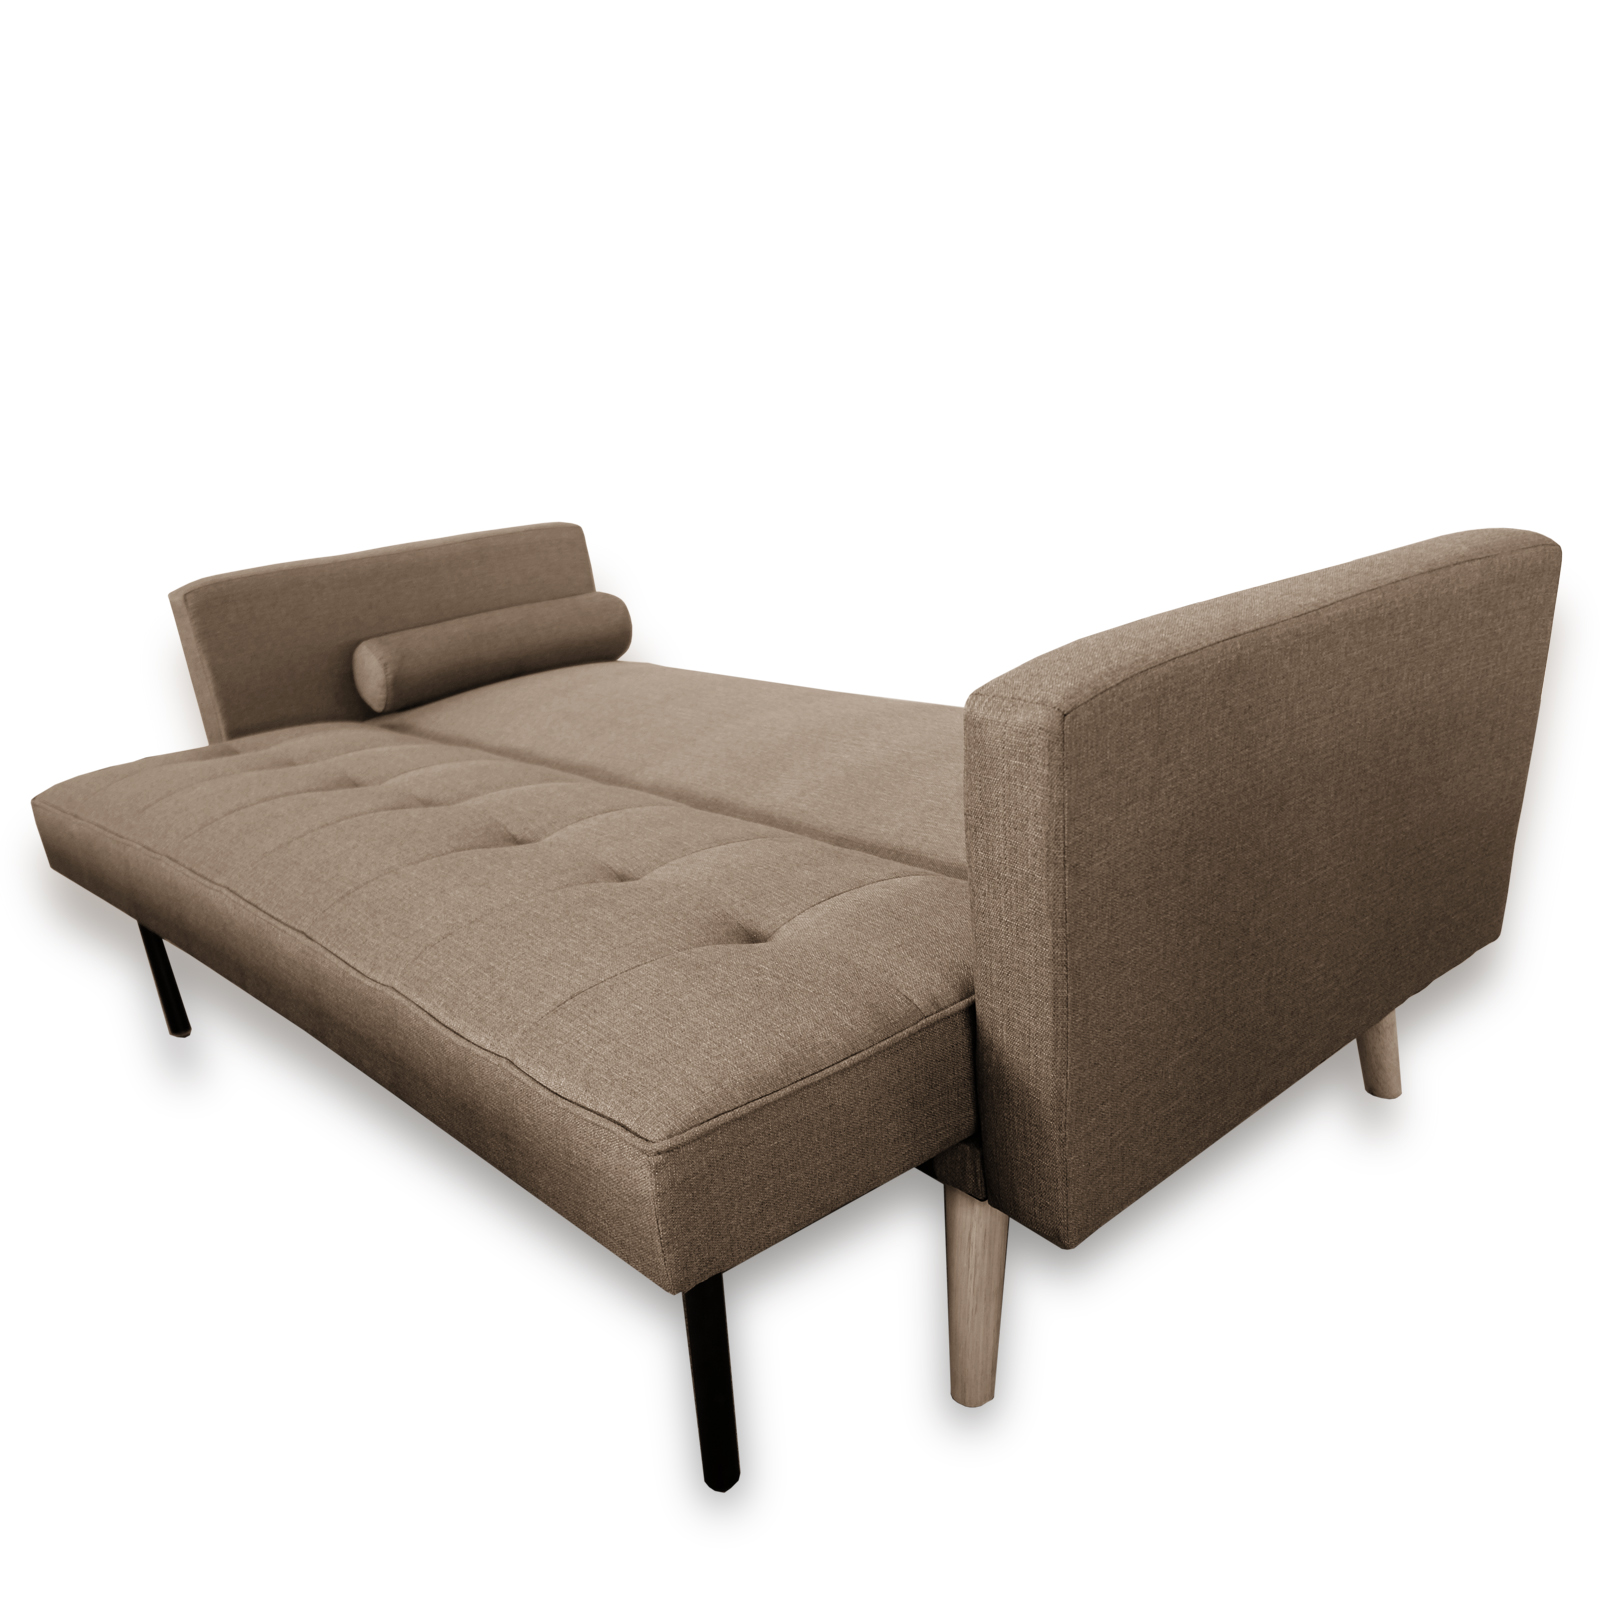 Amy contemporary scandinavian fabric click clack 3 seater for Click back sofa bed